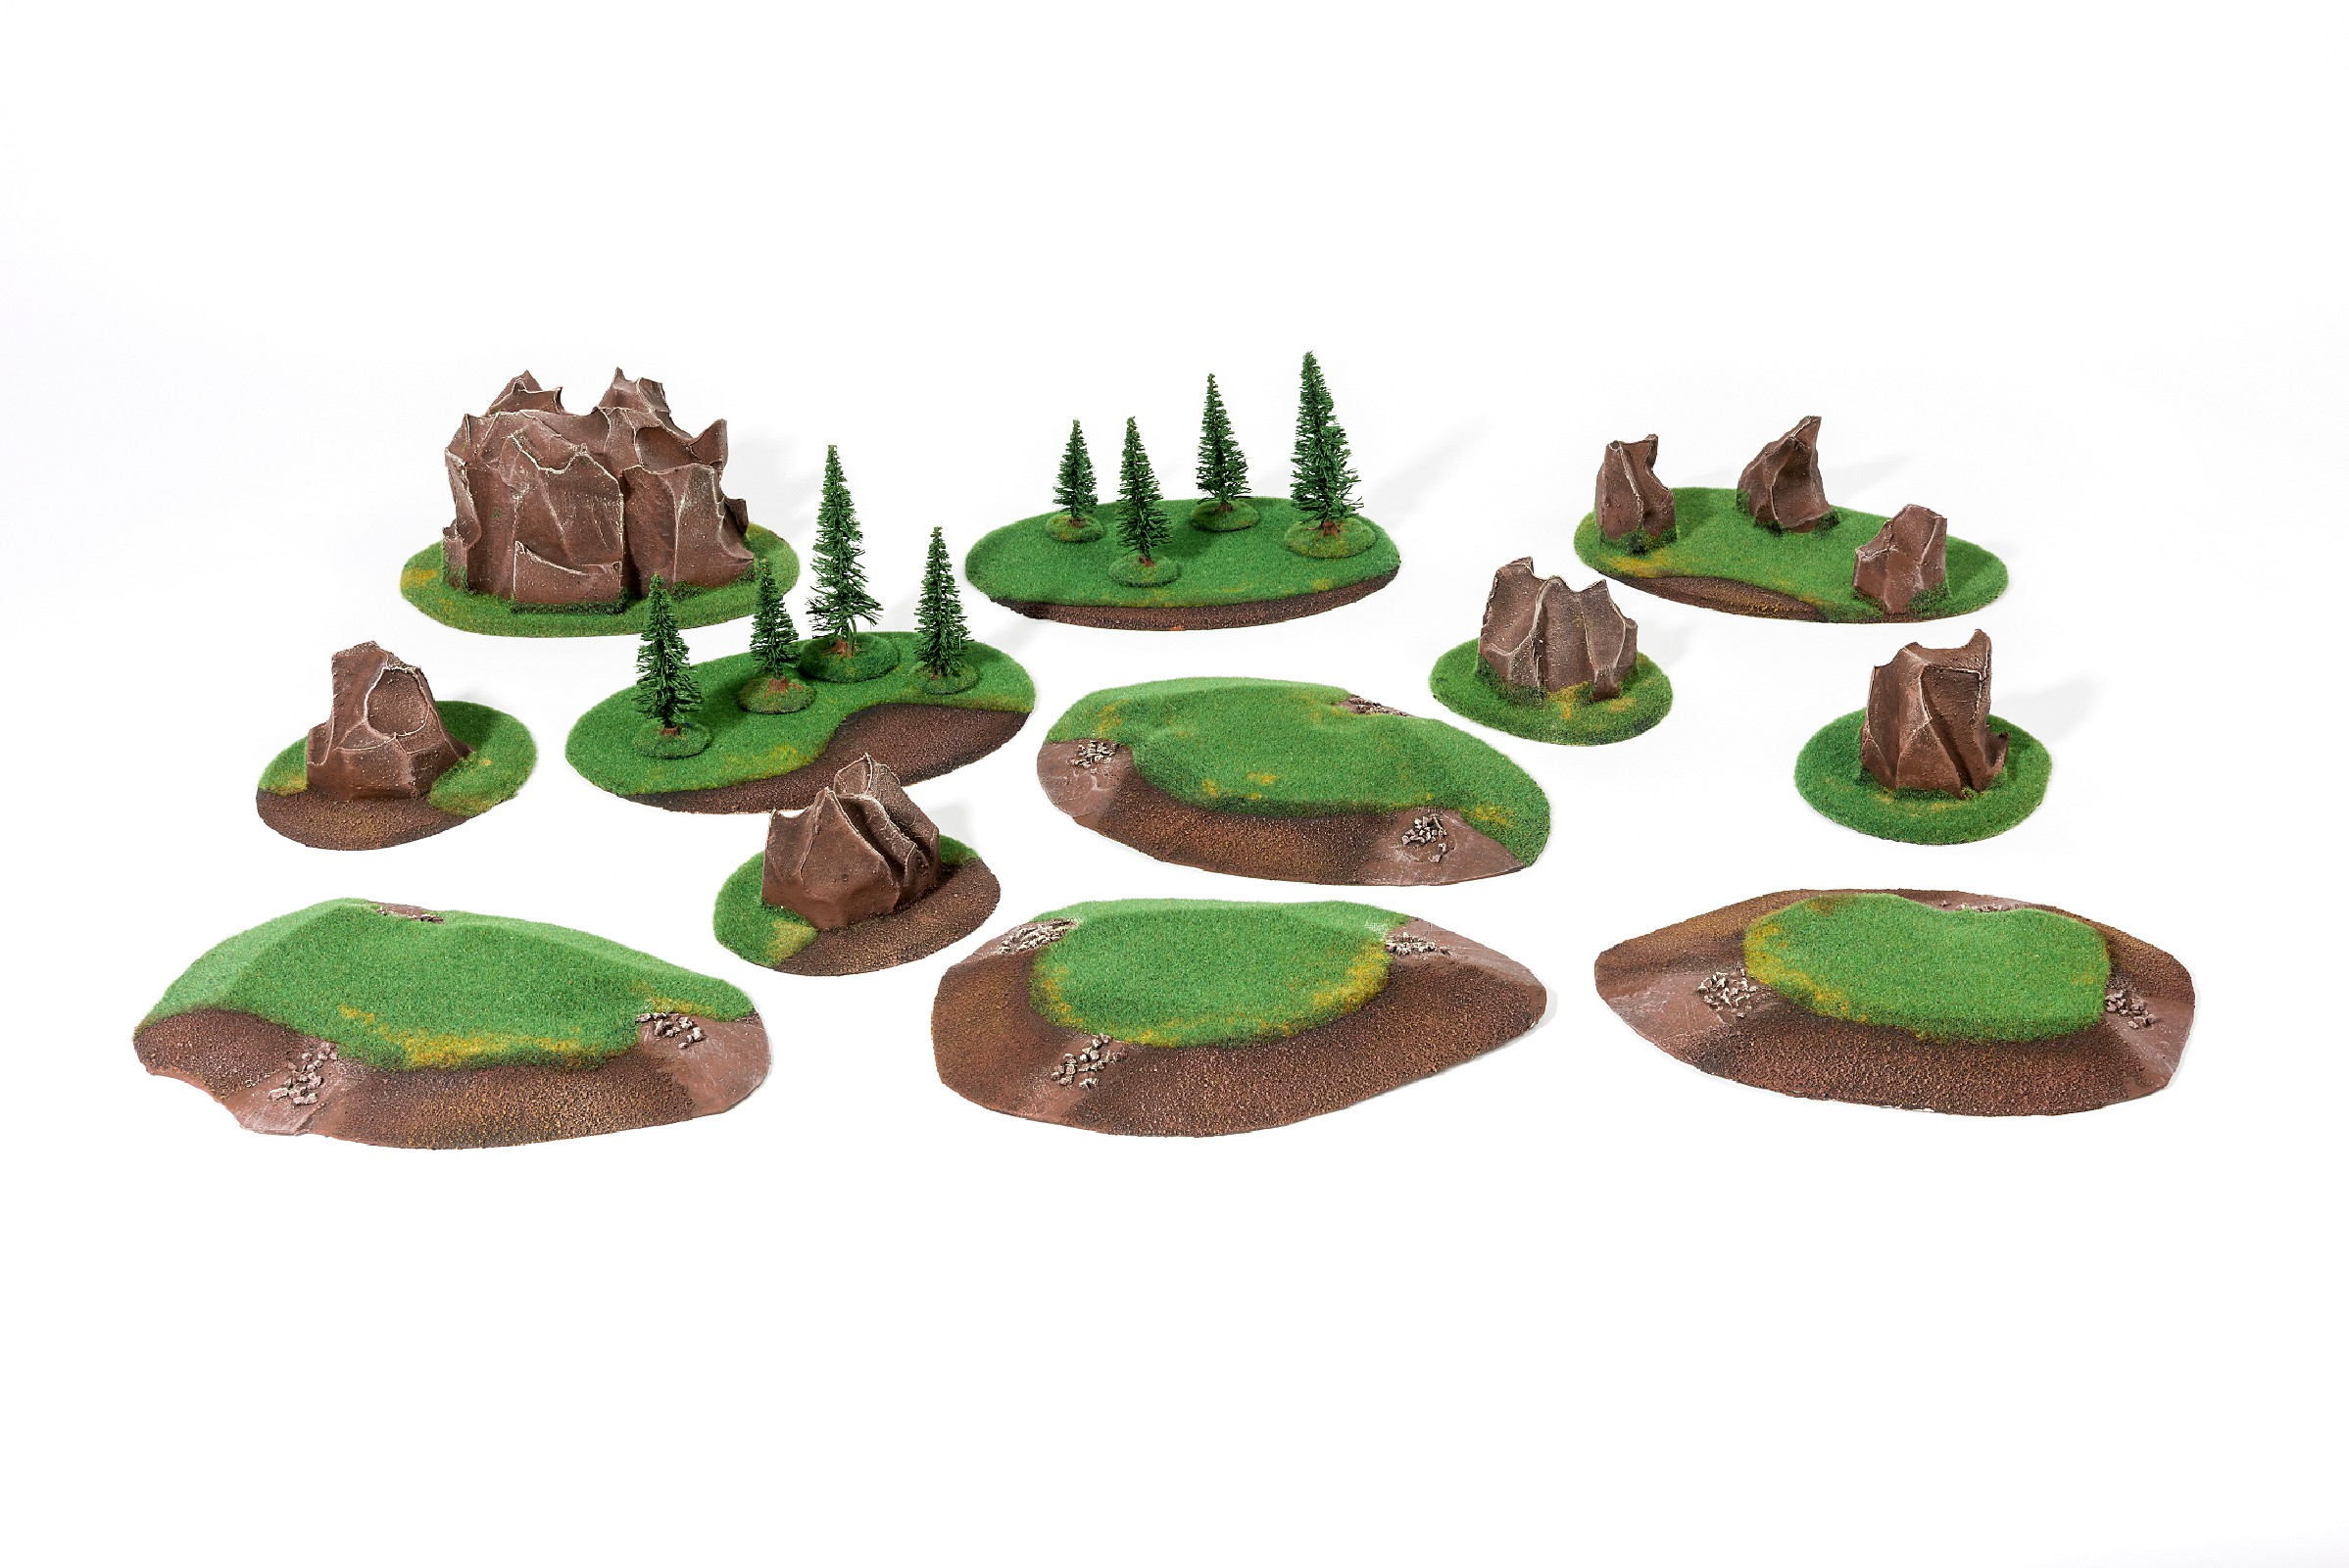 UNIVERSAL Basic terrain Set - 12 elements